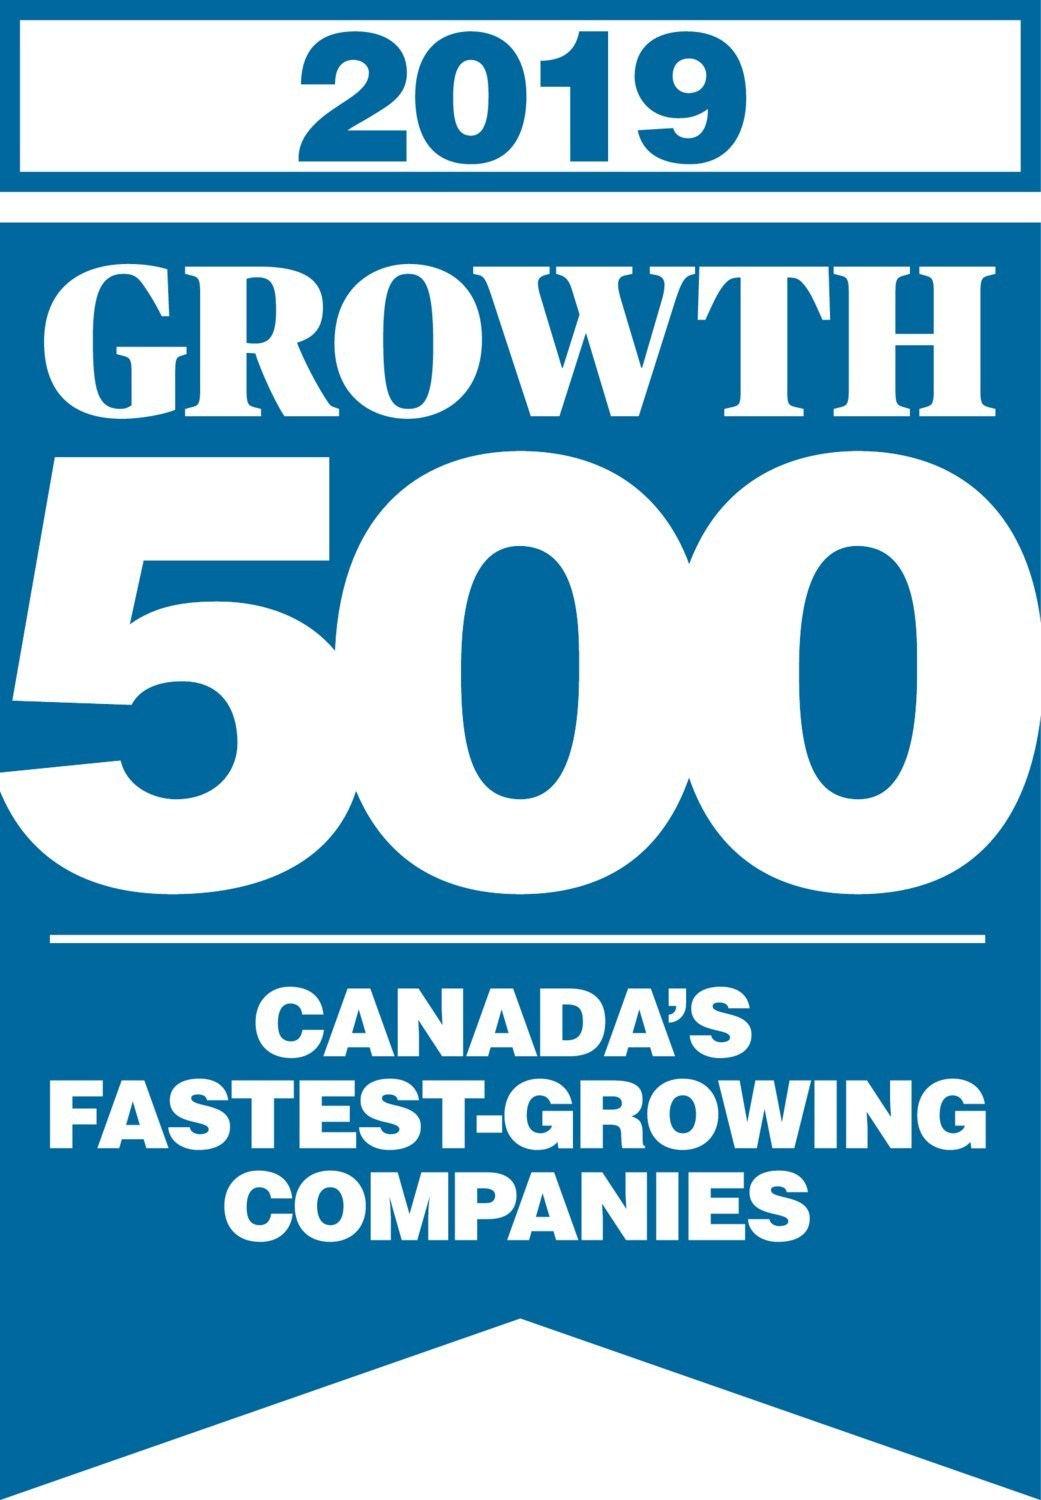 2019 Growth - Canada's Fastest Growing Companies